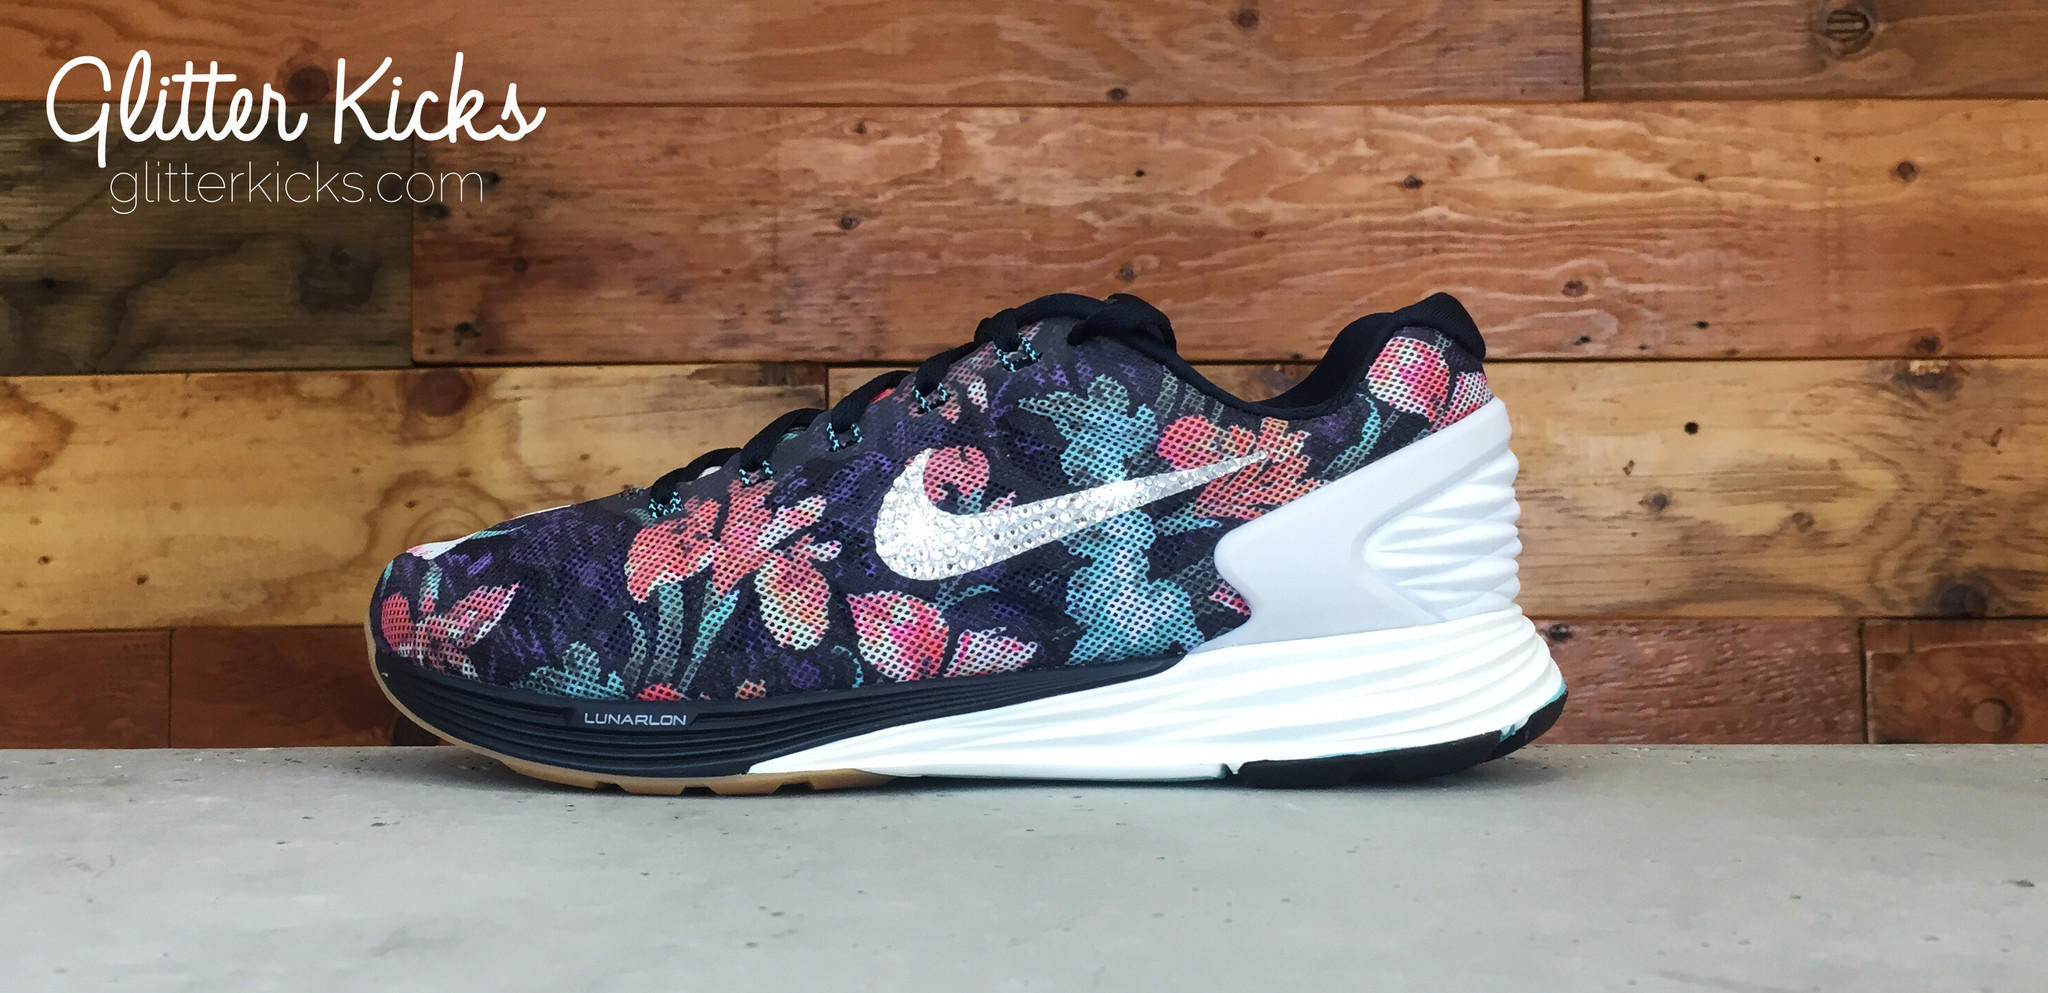 Nike Lunarglide 6 Photosynthesis from Glitter Kicks  65a9aec21